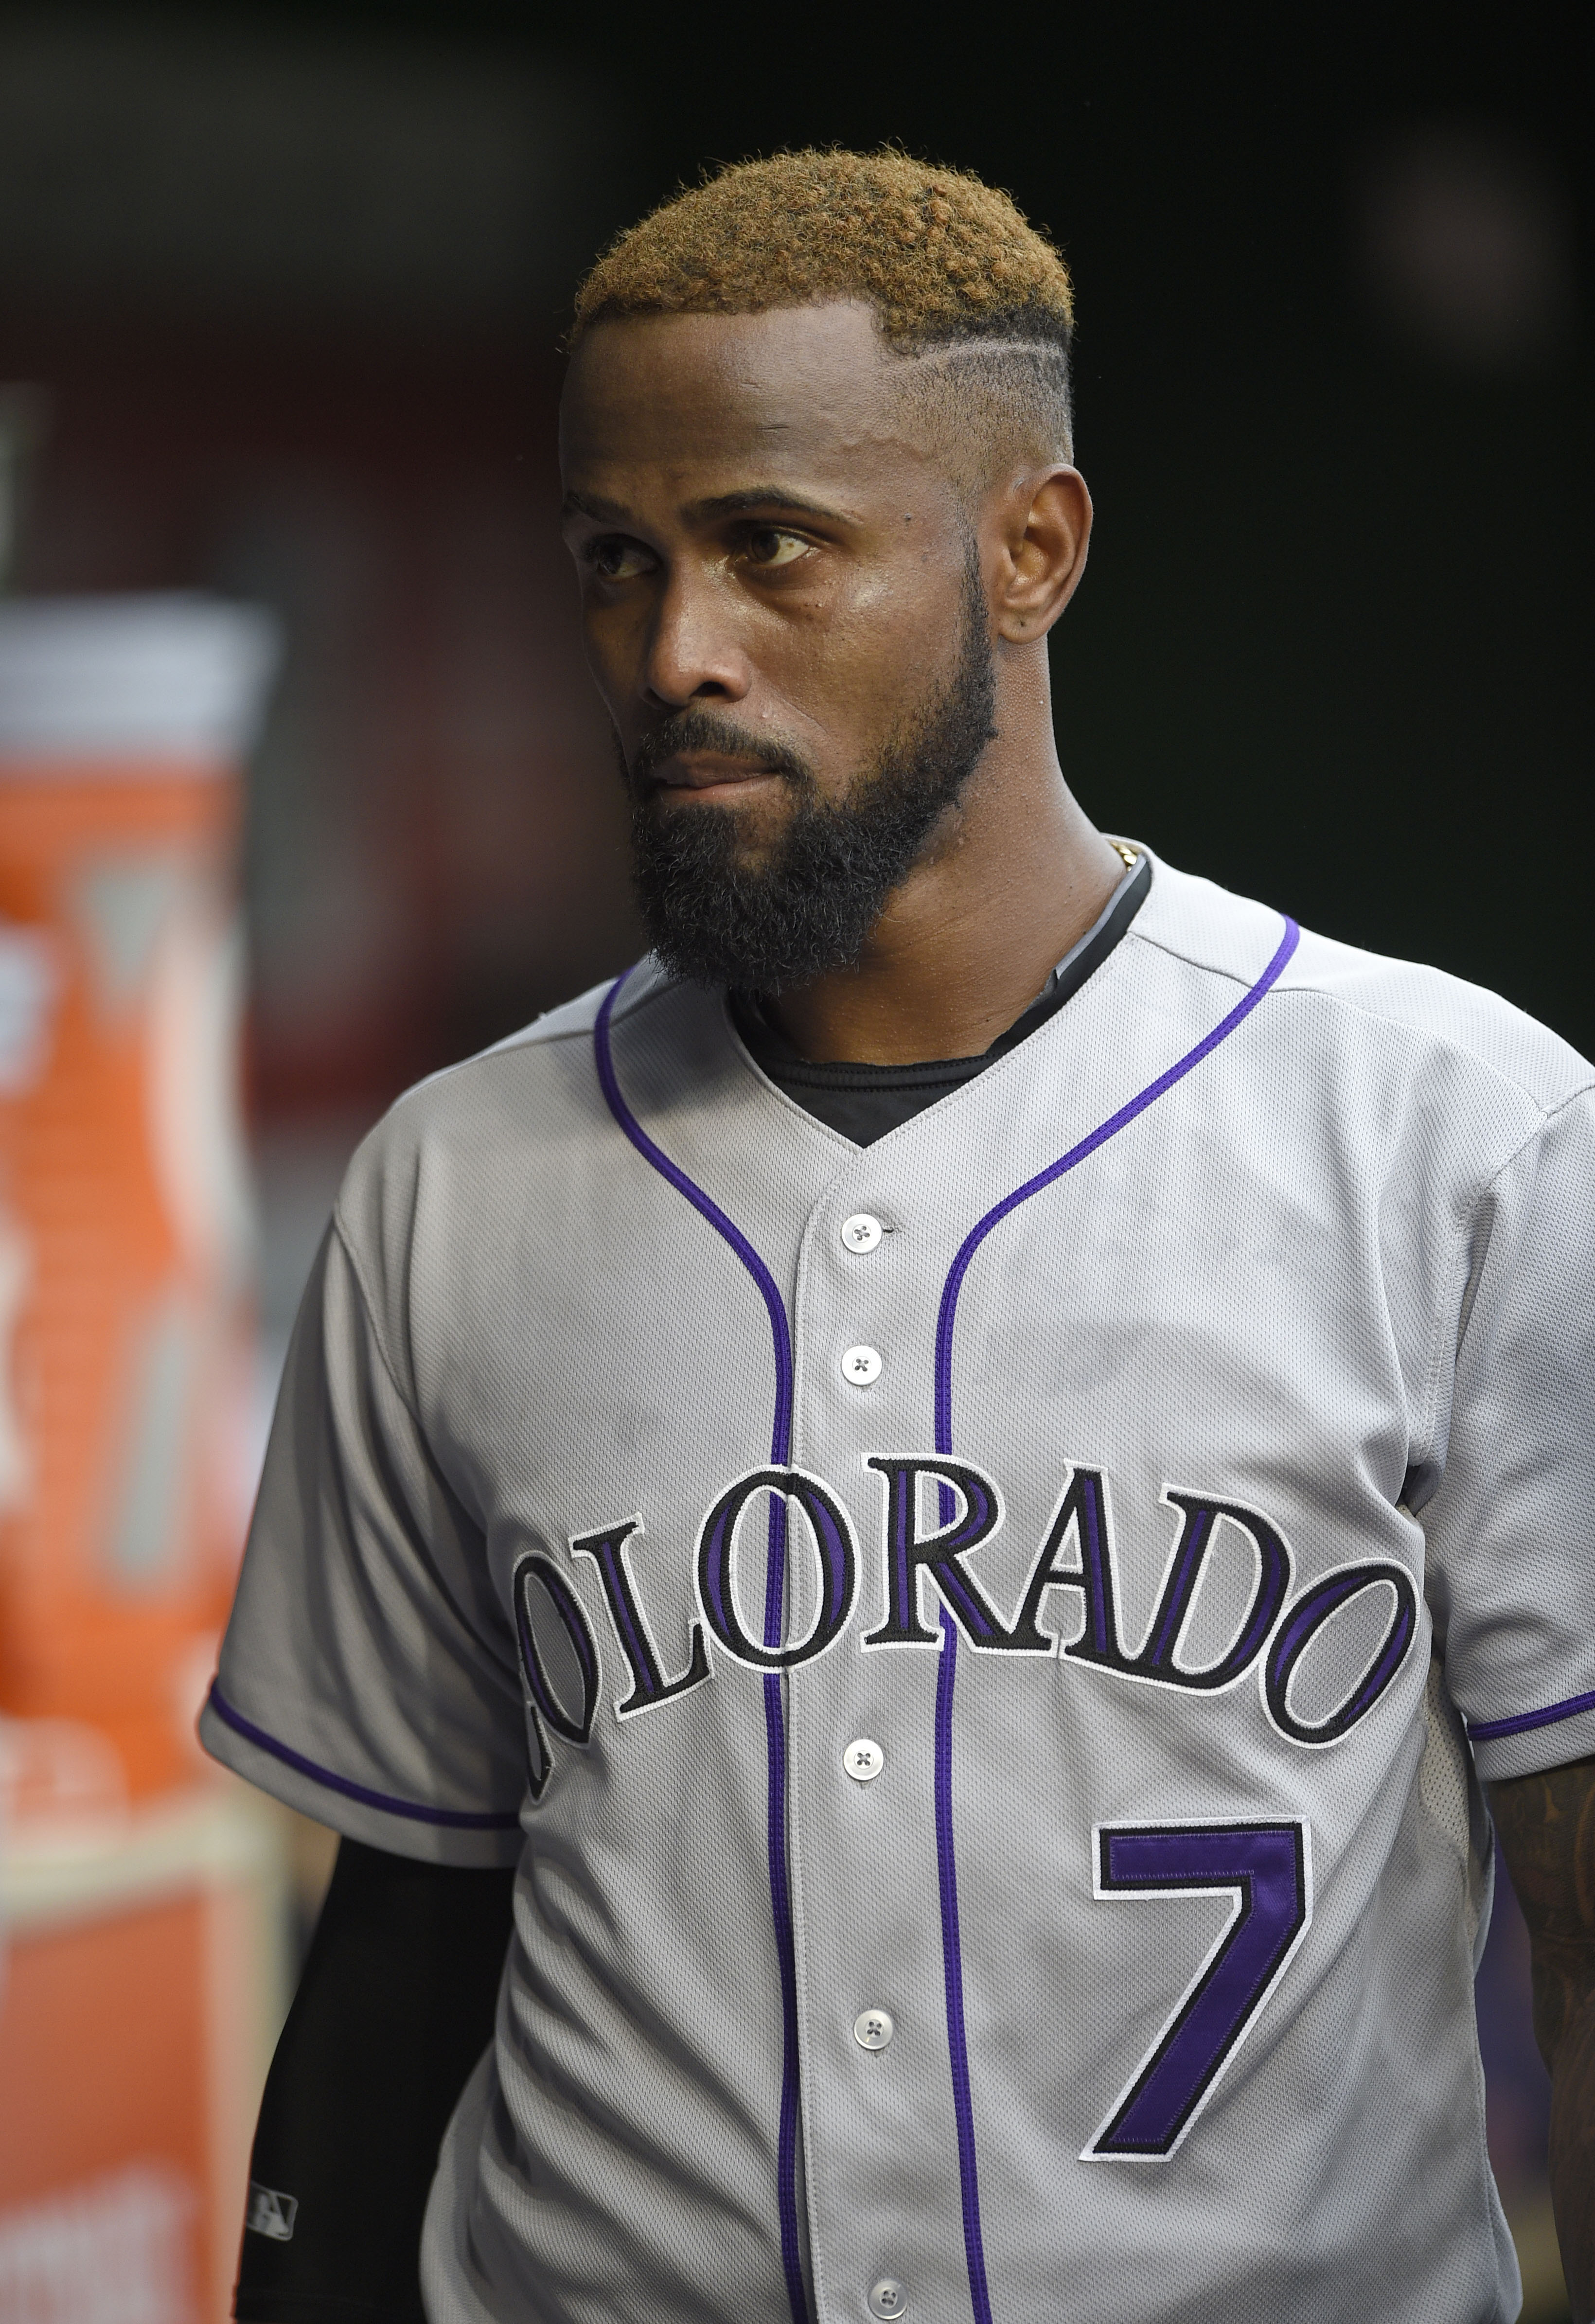 FILE - In this Aug. 7, 2015, file photo, Colorado Rockies shortstop Jose Reyes (7) looks on before a baseball game against the Washington Nationals, in Washington. Reyes was arrested after an argument with his wife turned physical at the Four Seasons Reso